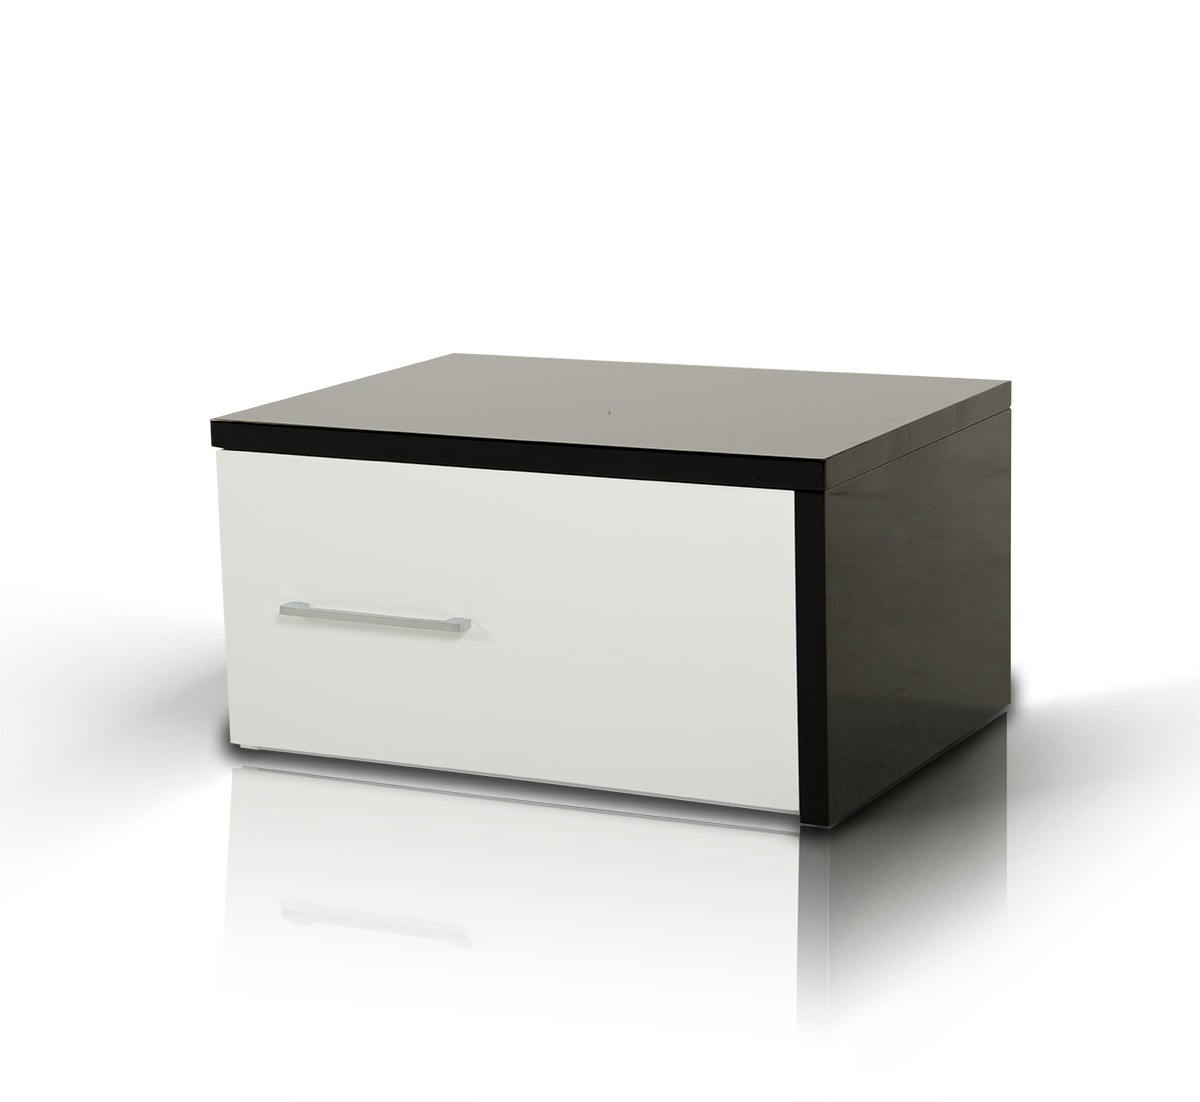 modrest infinity  contemporary night stand  nightstands  bedroom - modrest infinity  contemporary night stand